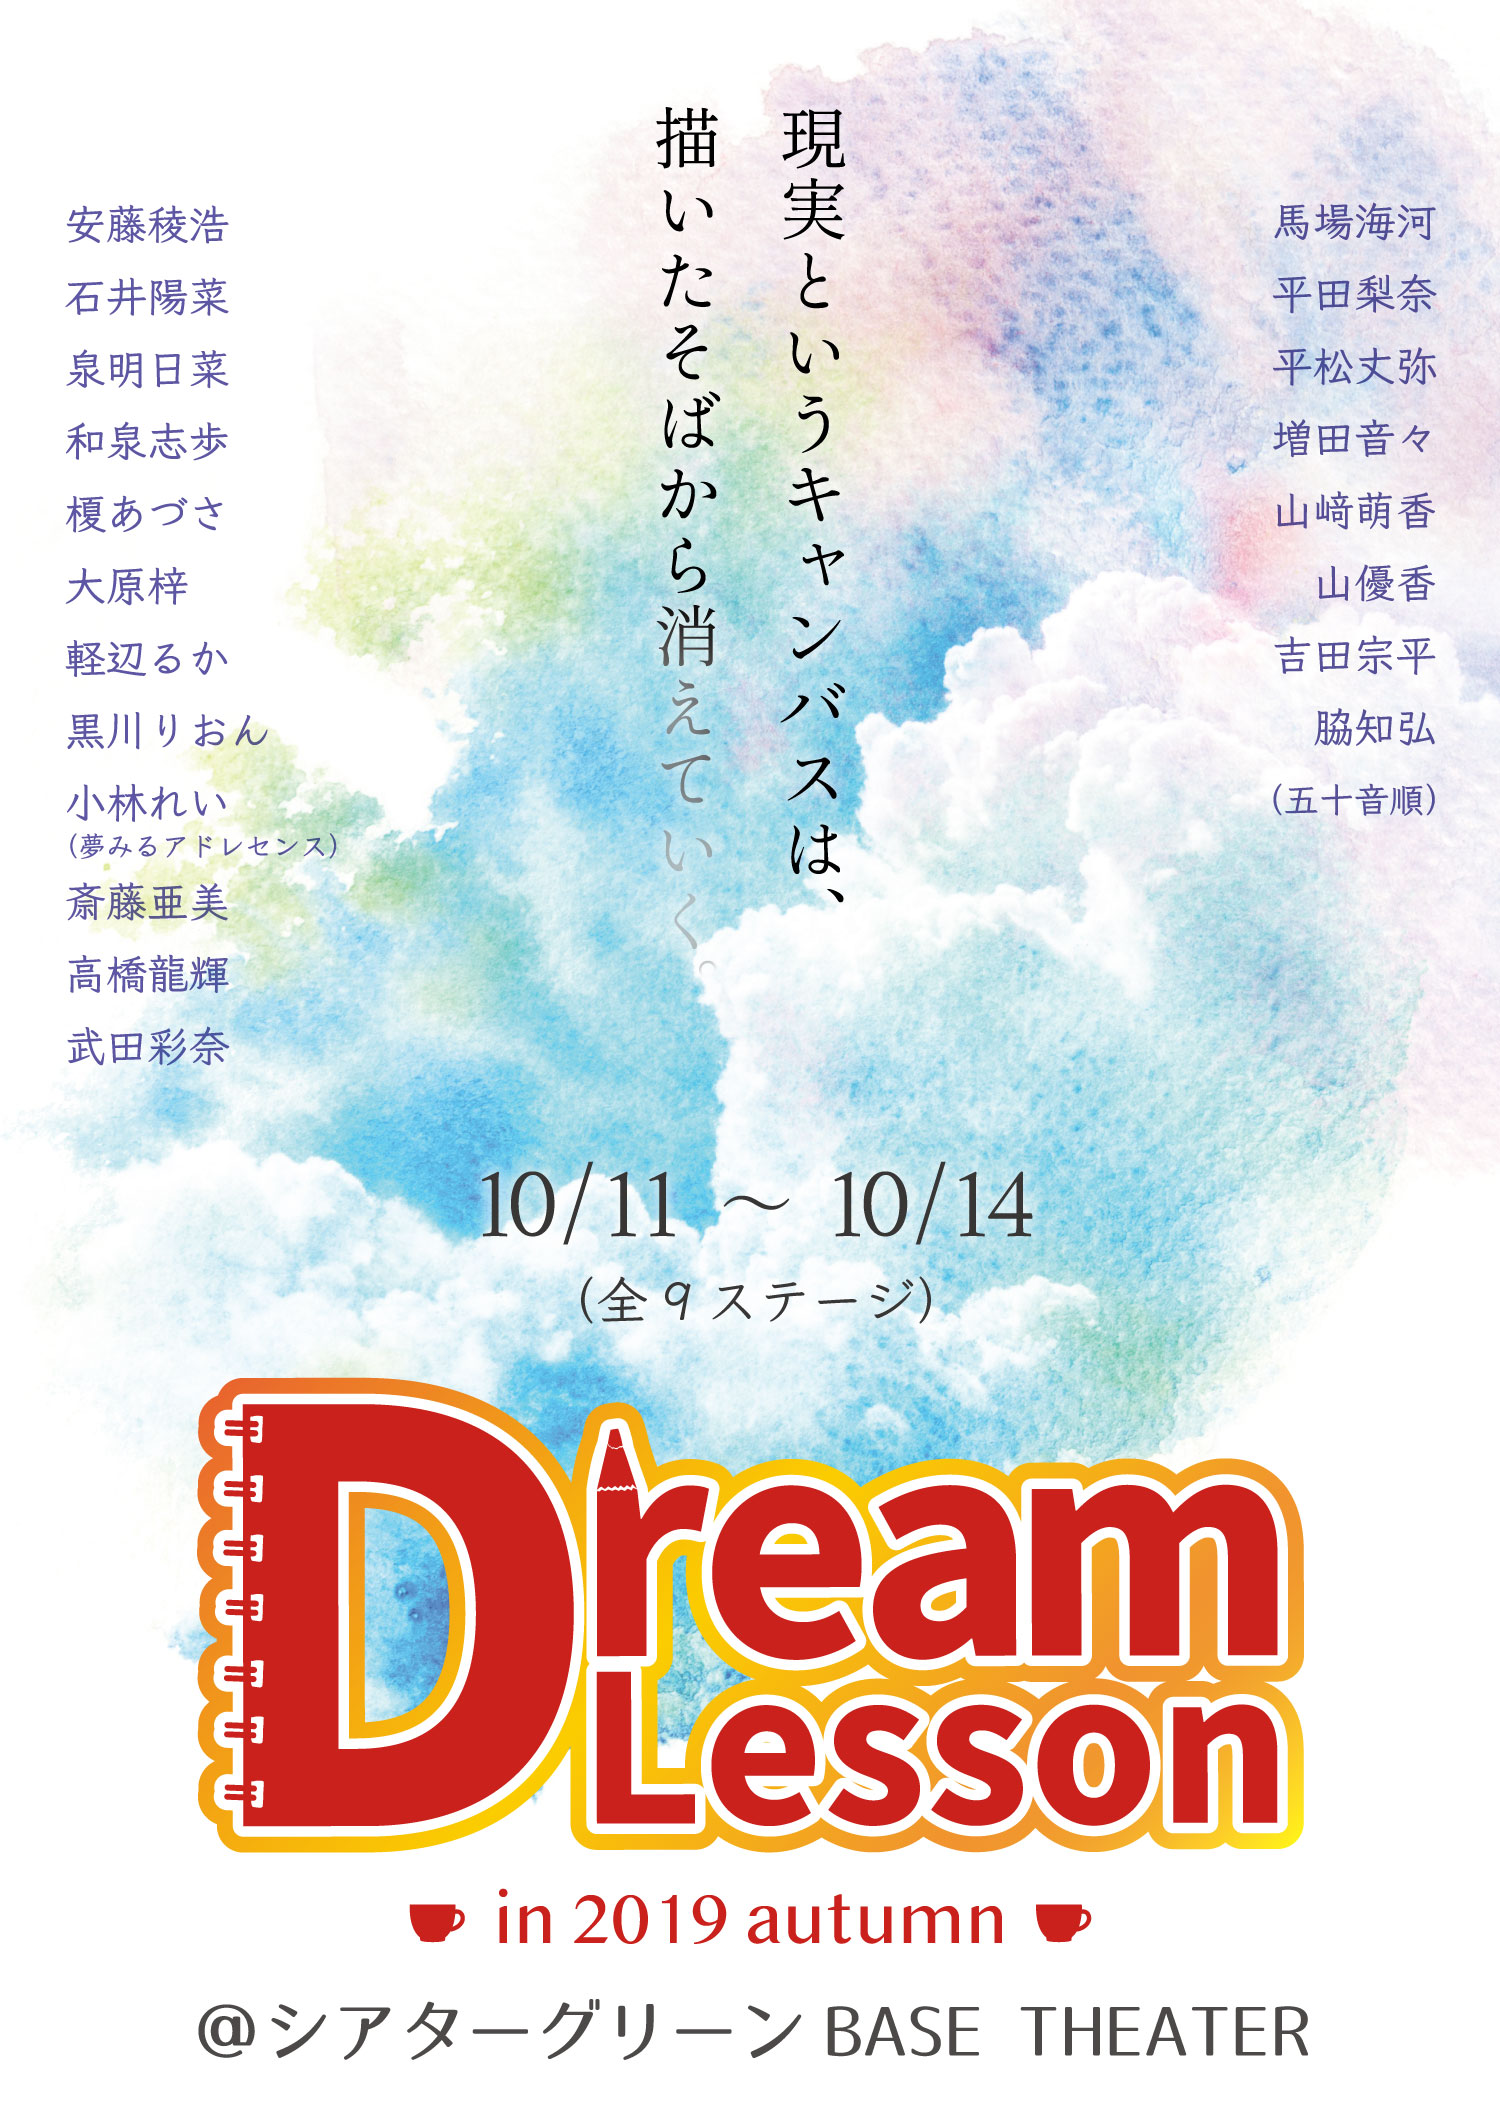 【10月12日 15時30分】公演 Dream Lesson in2019 autumn